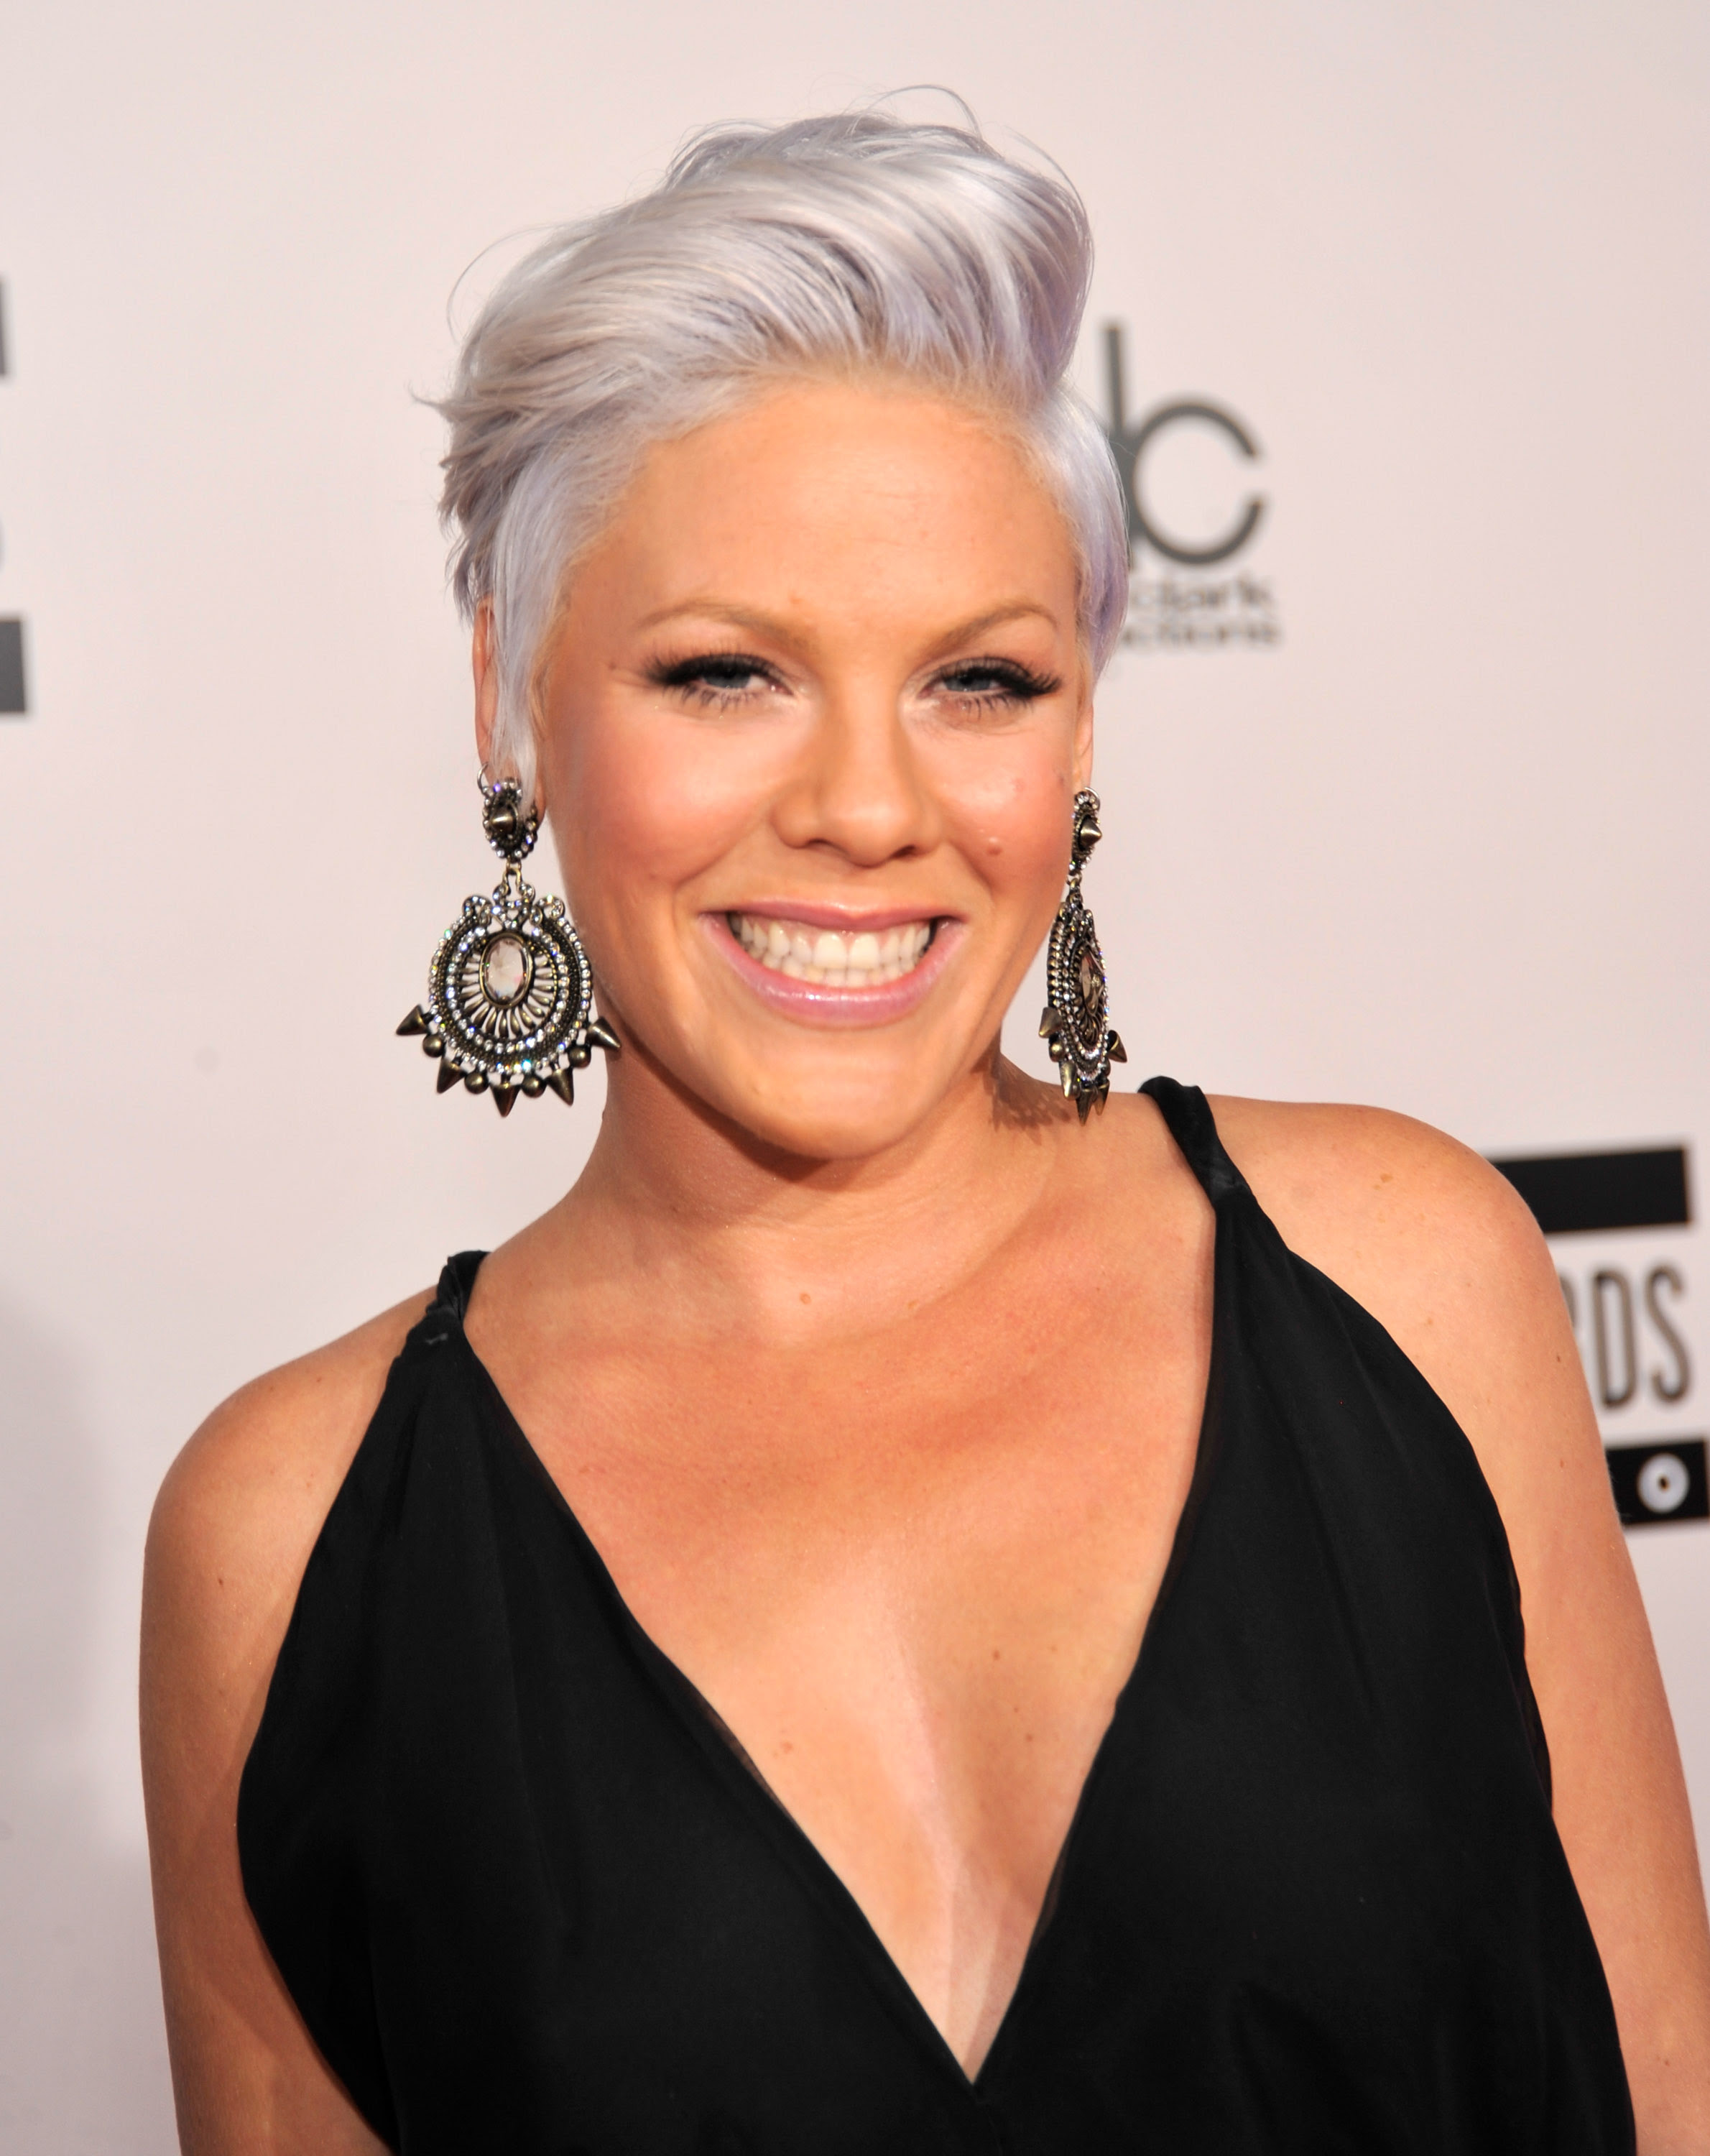 Celebrities Who Have Rocked Silver Hairstyles DooWop Hair Salon